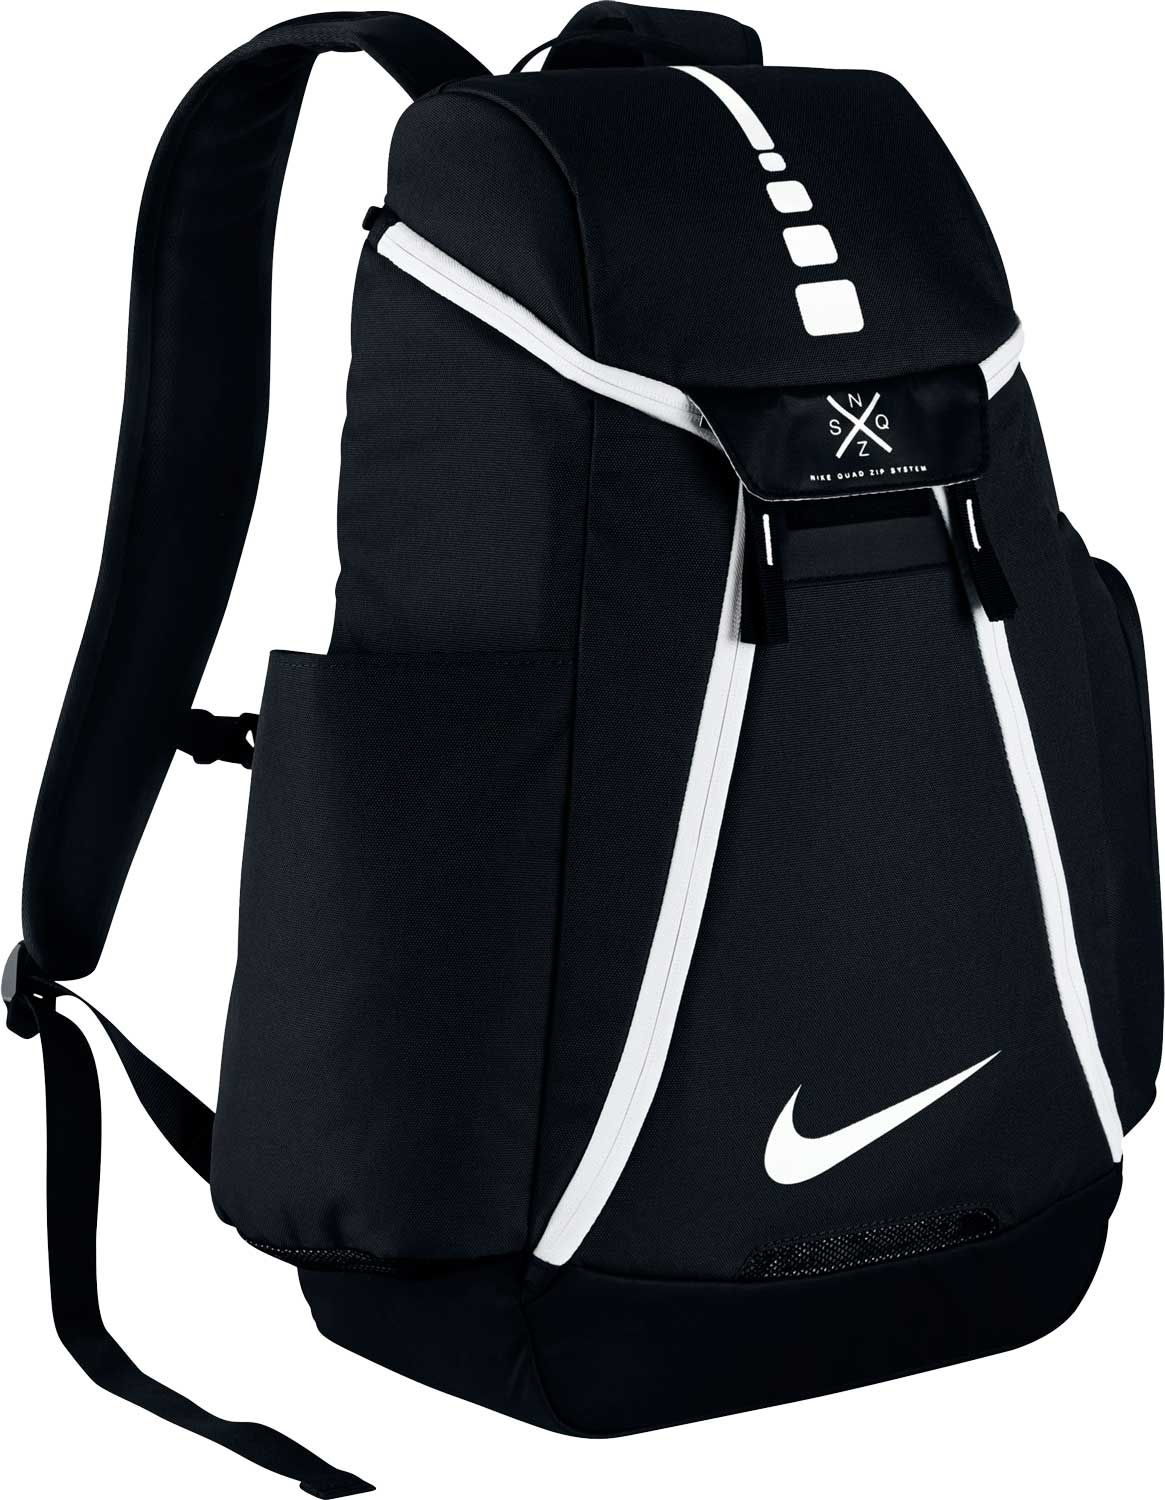 Sports Backpacks Gym Bags